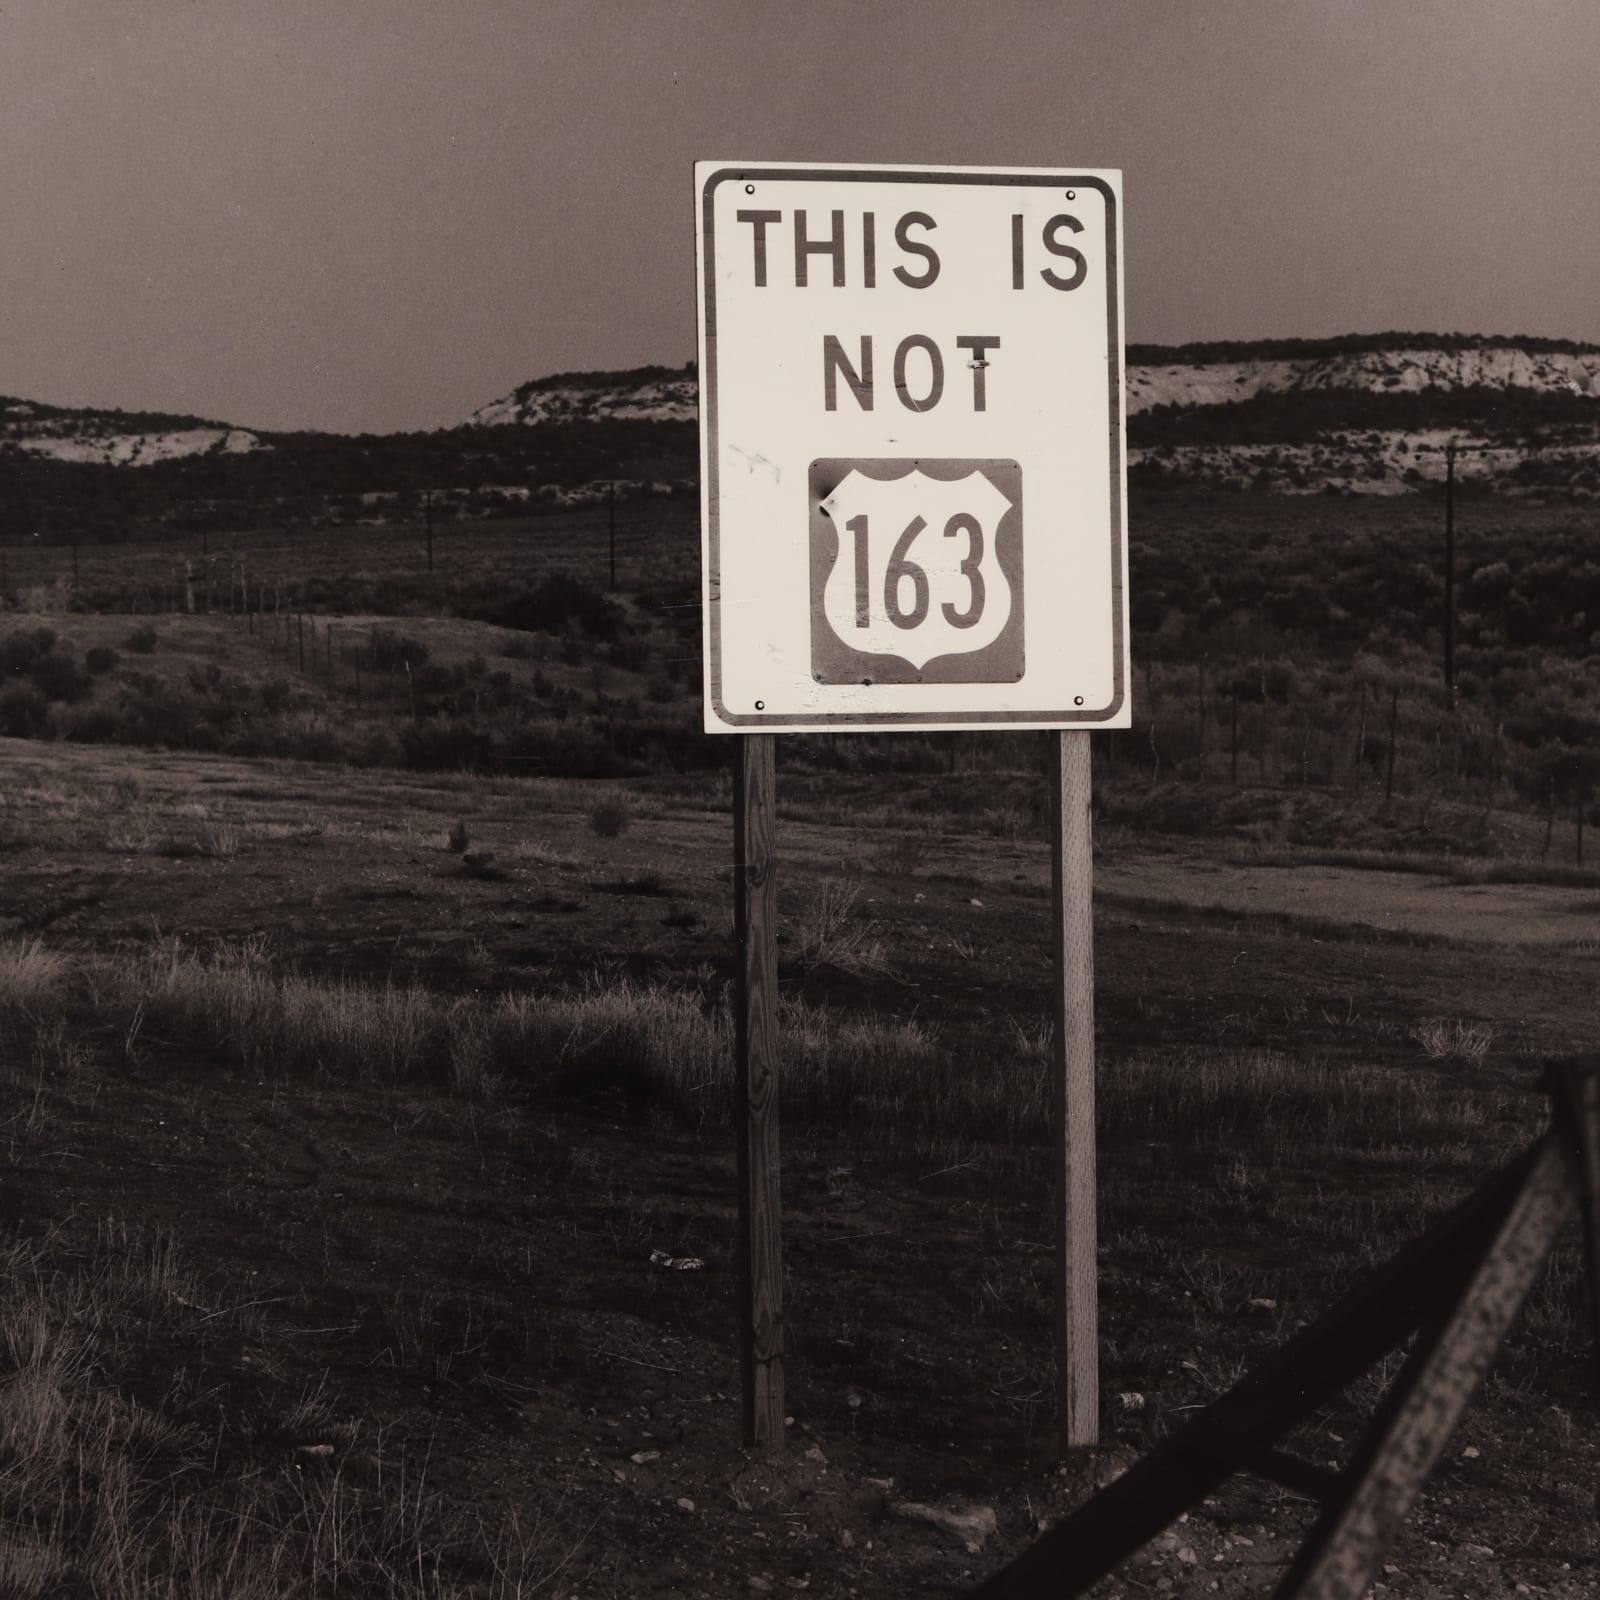 Bob Kolbrener  This Is Not 163, Utah, 1978  Silver Gelatin  10 1/2 x 13 1/2 in